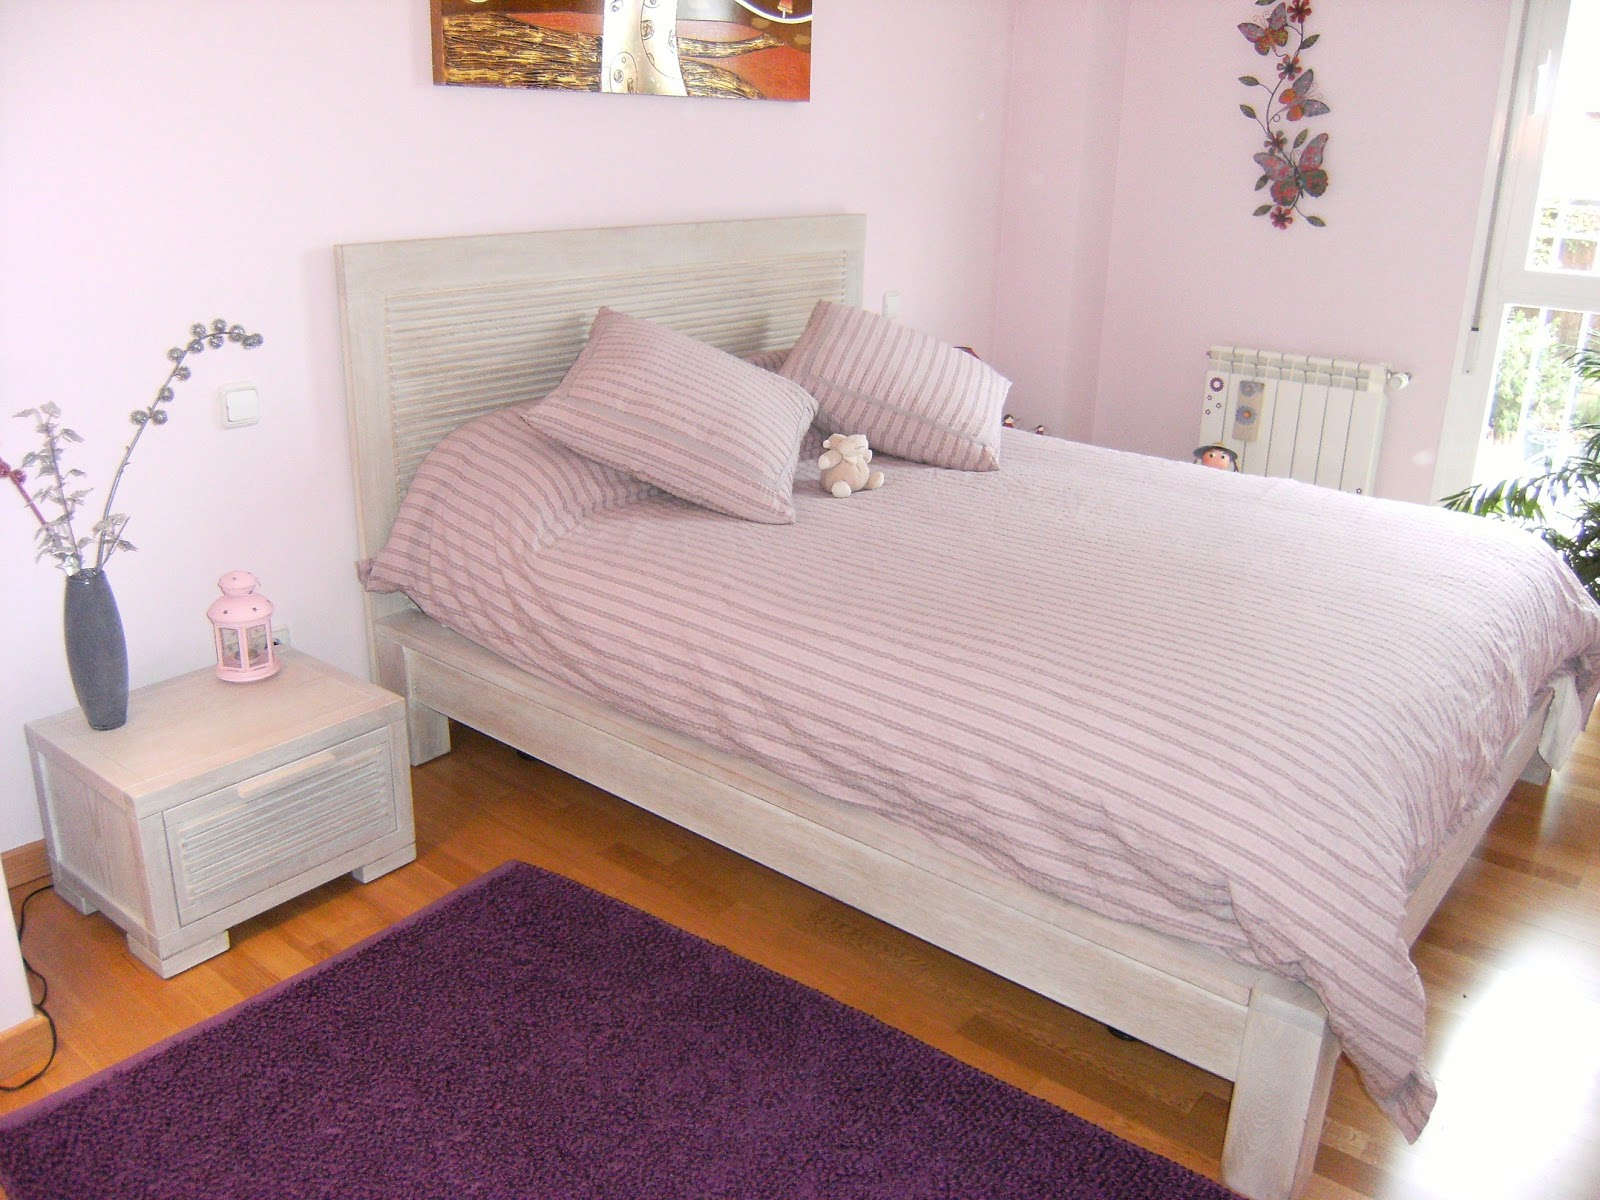 Ofertas Muebles Segunda Mano Things Of Girls Ofertas De Segunda Mano En Muebles